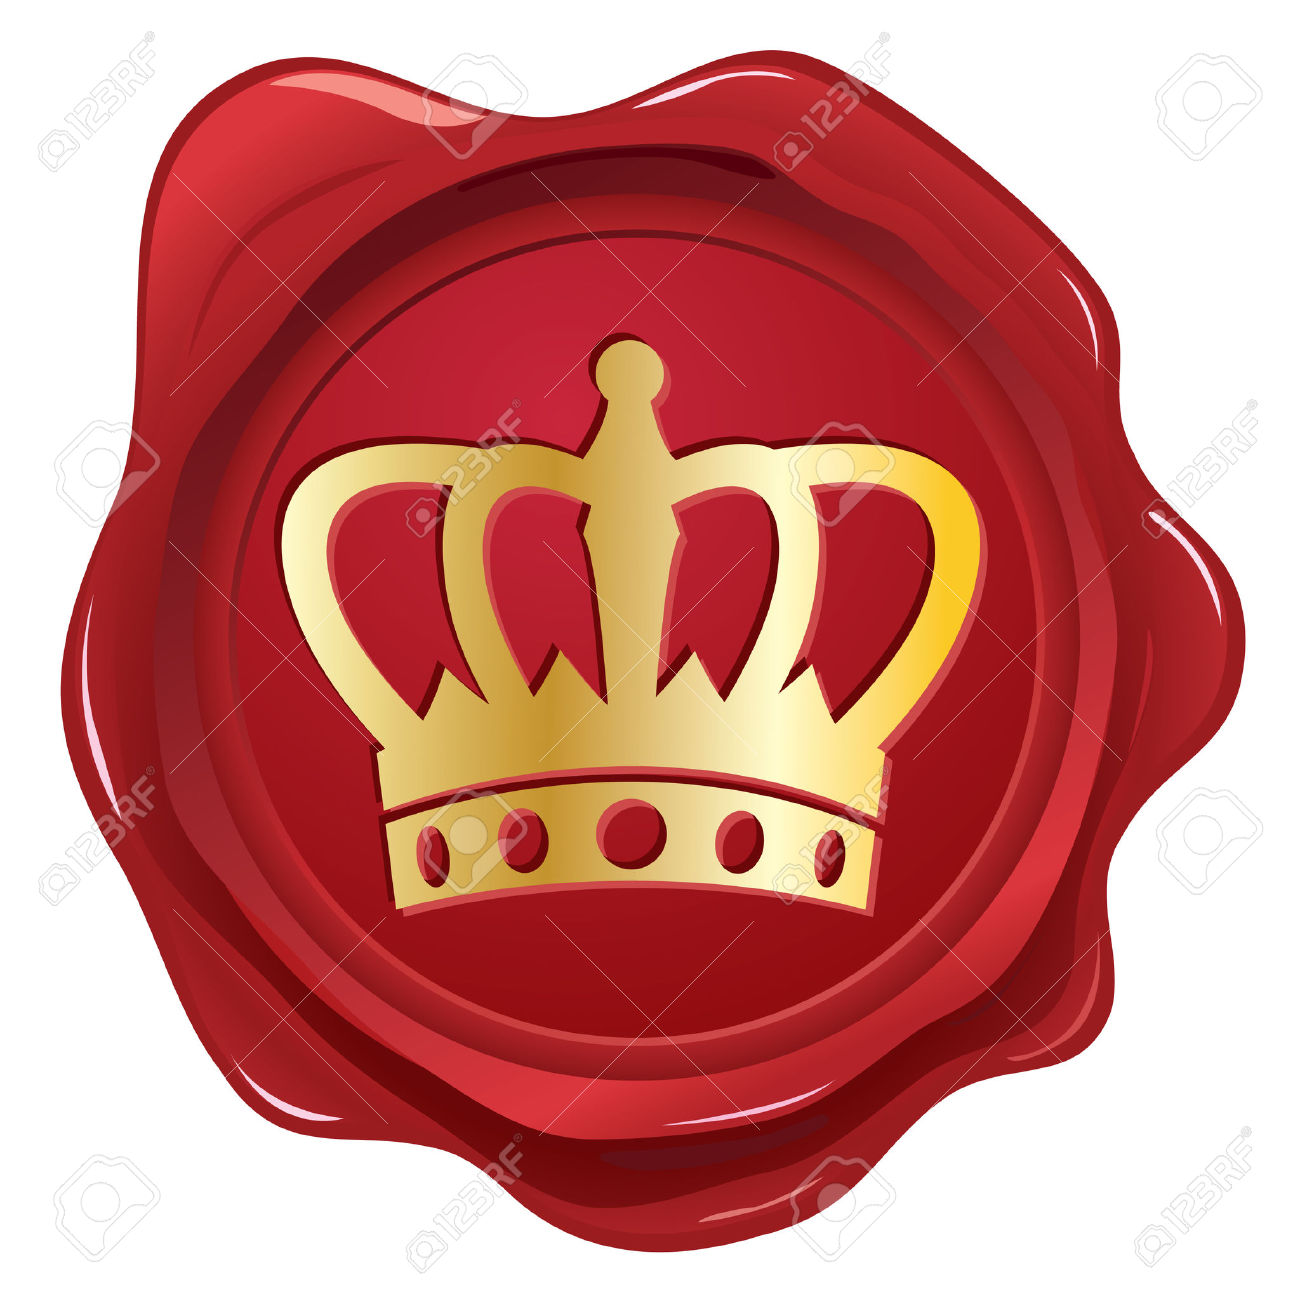 Crown Wax Seal Royalty Free Cliparts, Vectors, And Stock.